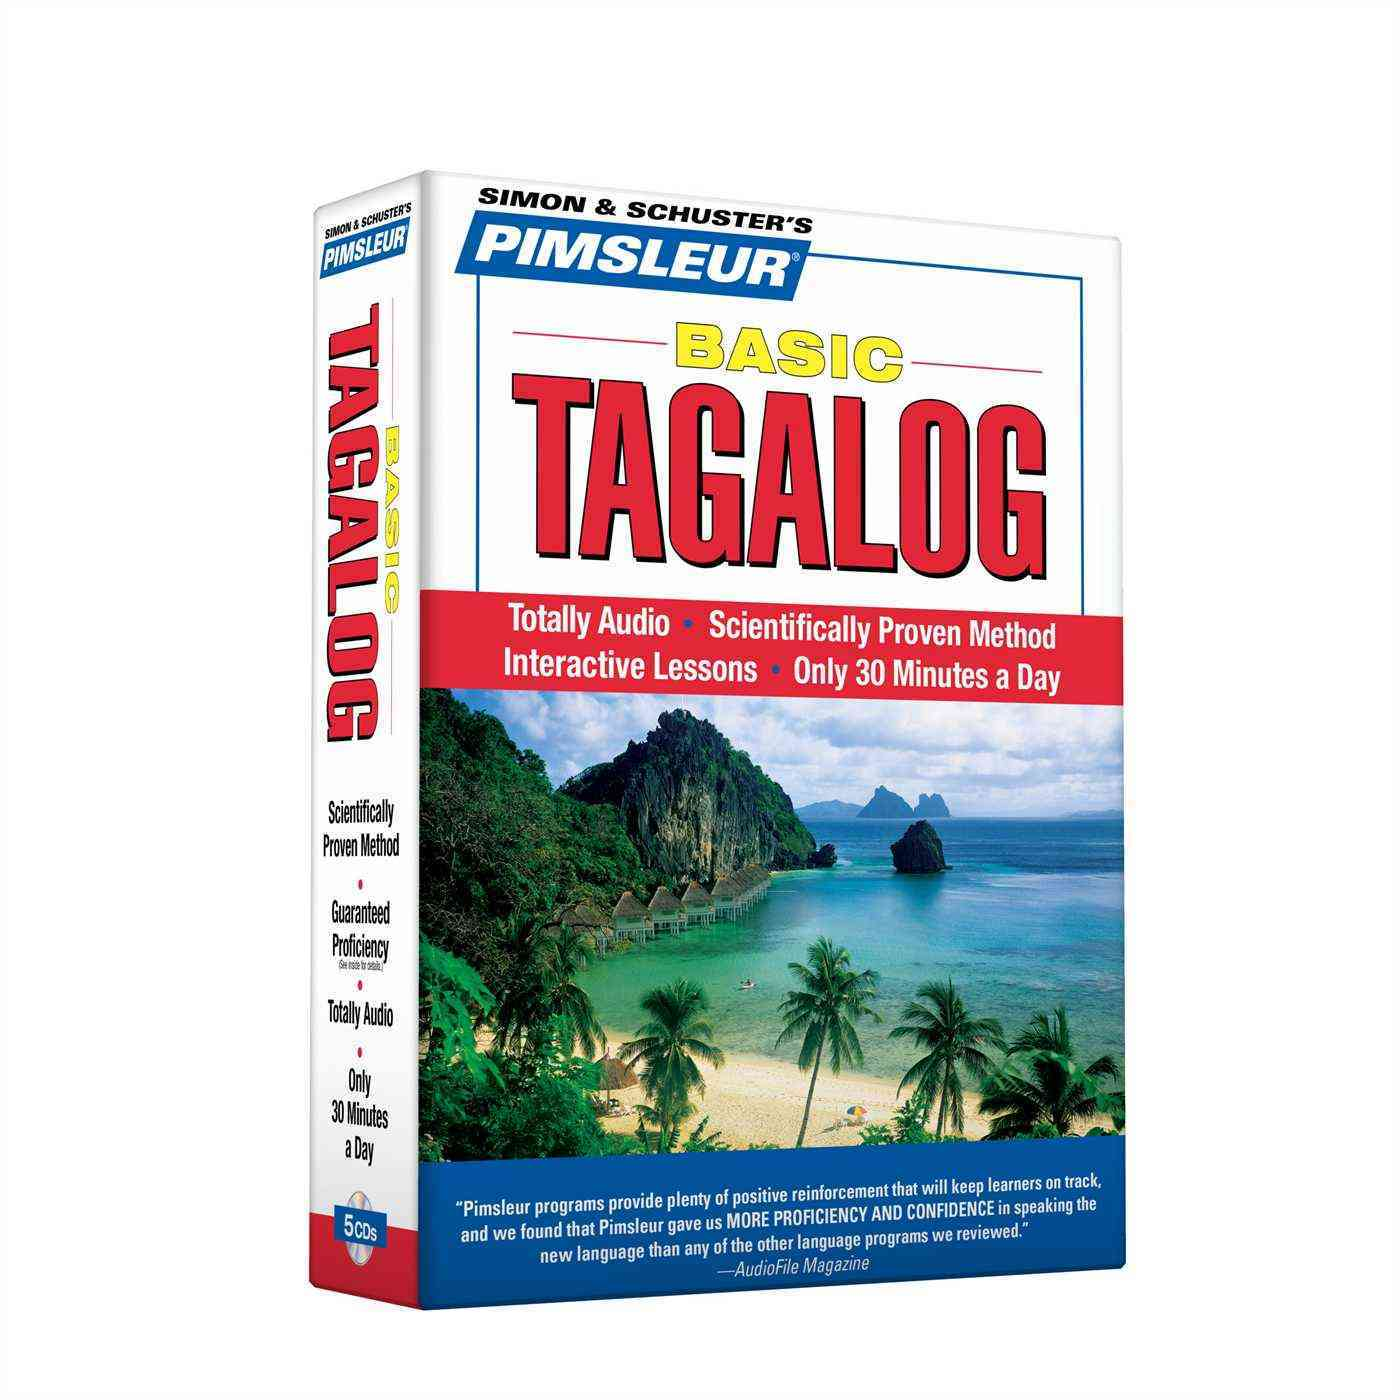 [CD] Basic Tagalog By Pimsleur